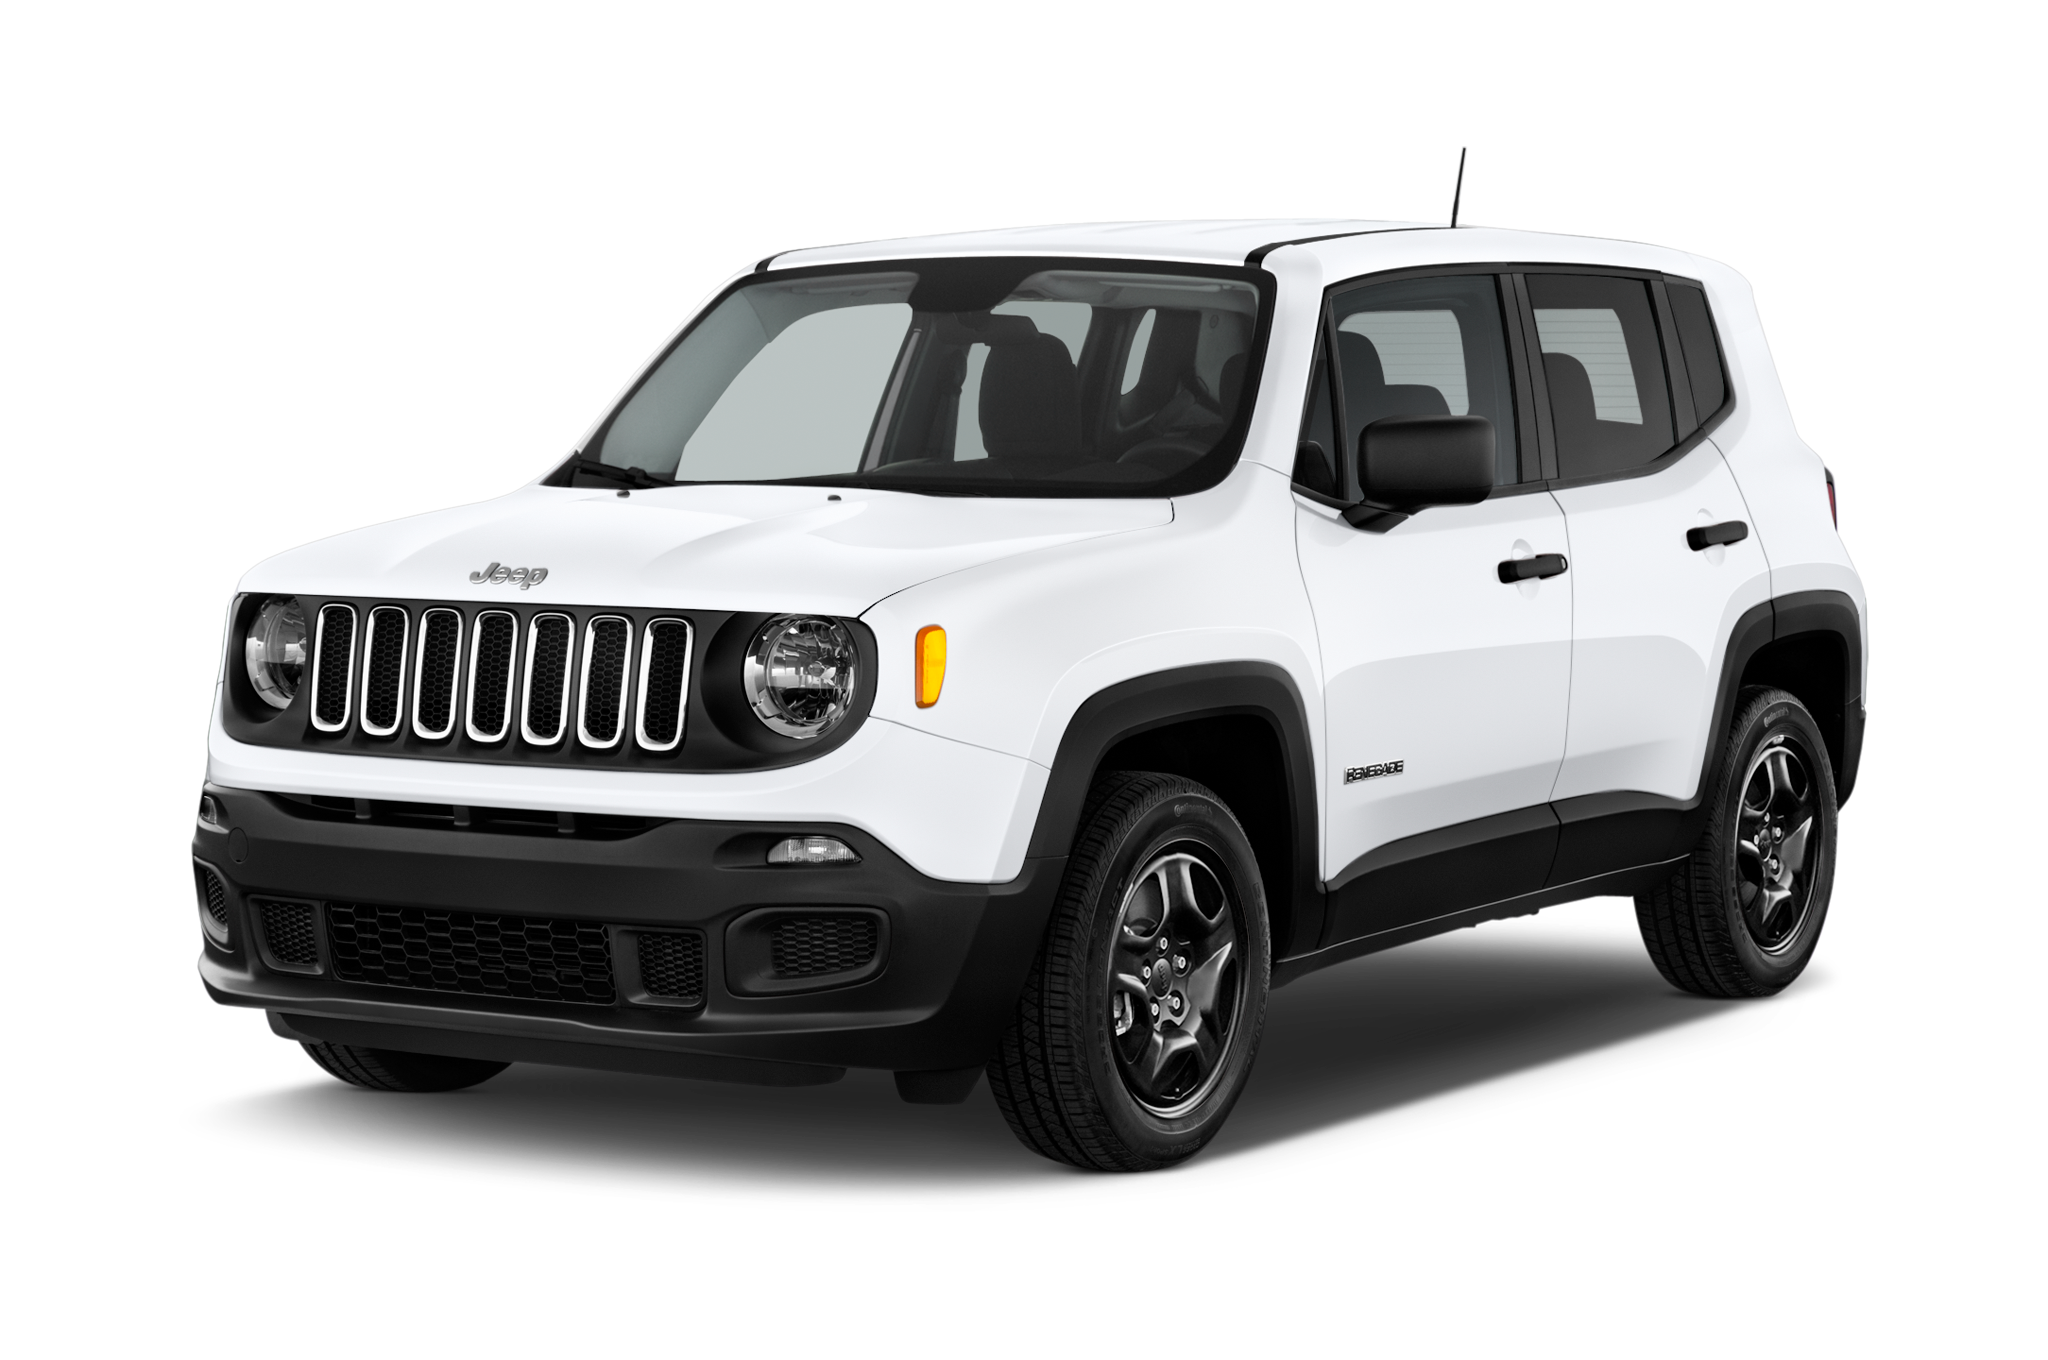 2016 jeep renegade sport 4wd specs and features msn autos. Black Bedroom Furniture Sets. Home Design Ideas